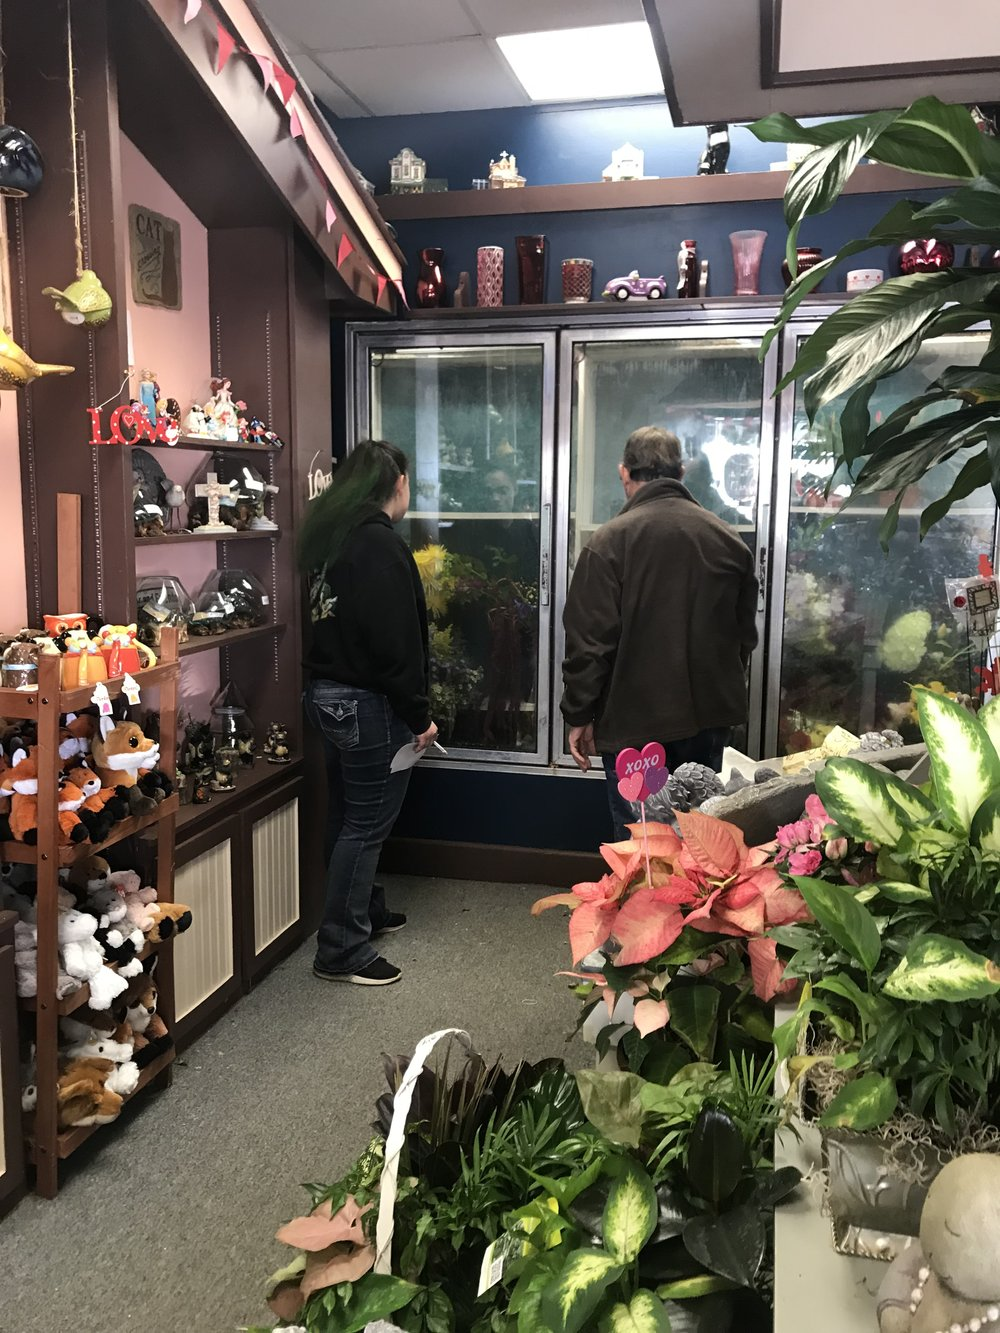 Katy Konop (left) and University of Illinois Extension educator Richard Hentschel check the inventory at Katy's floral shop